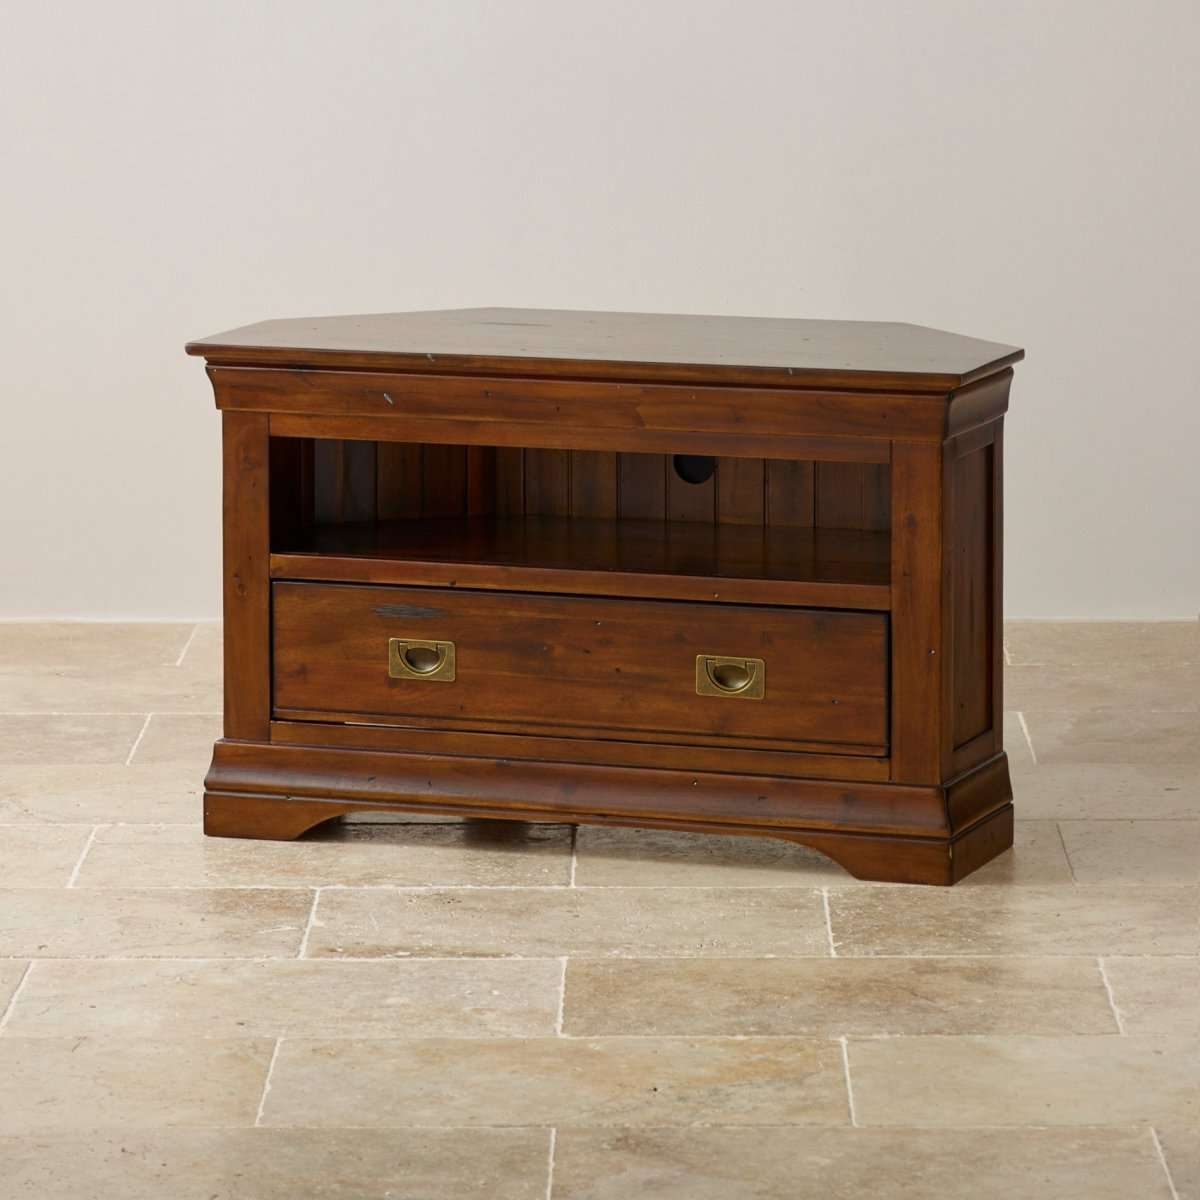 Victoria Corner Tv Cabinet In Solid Acacia | Oak Furniture Land With Corner Tv Cabinets (View 13 of 20)